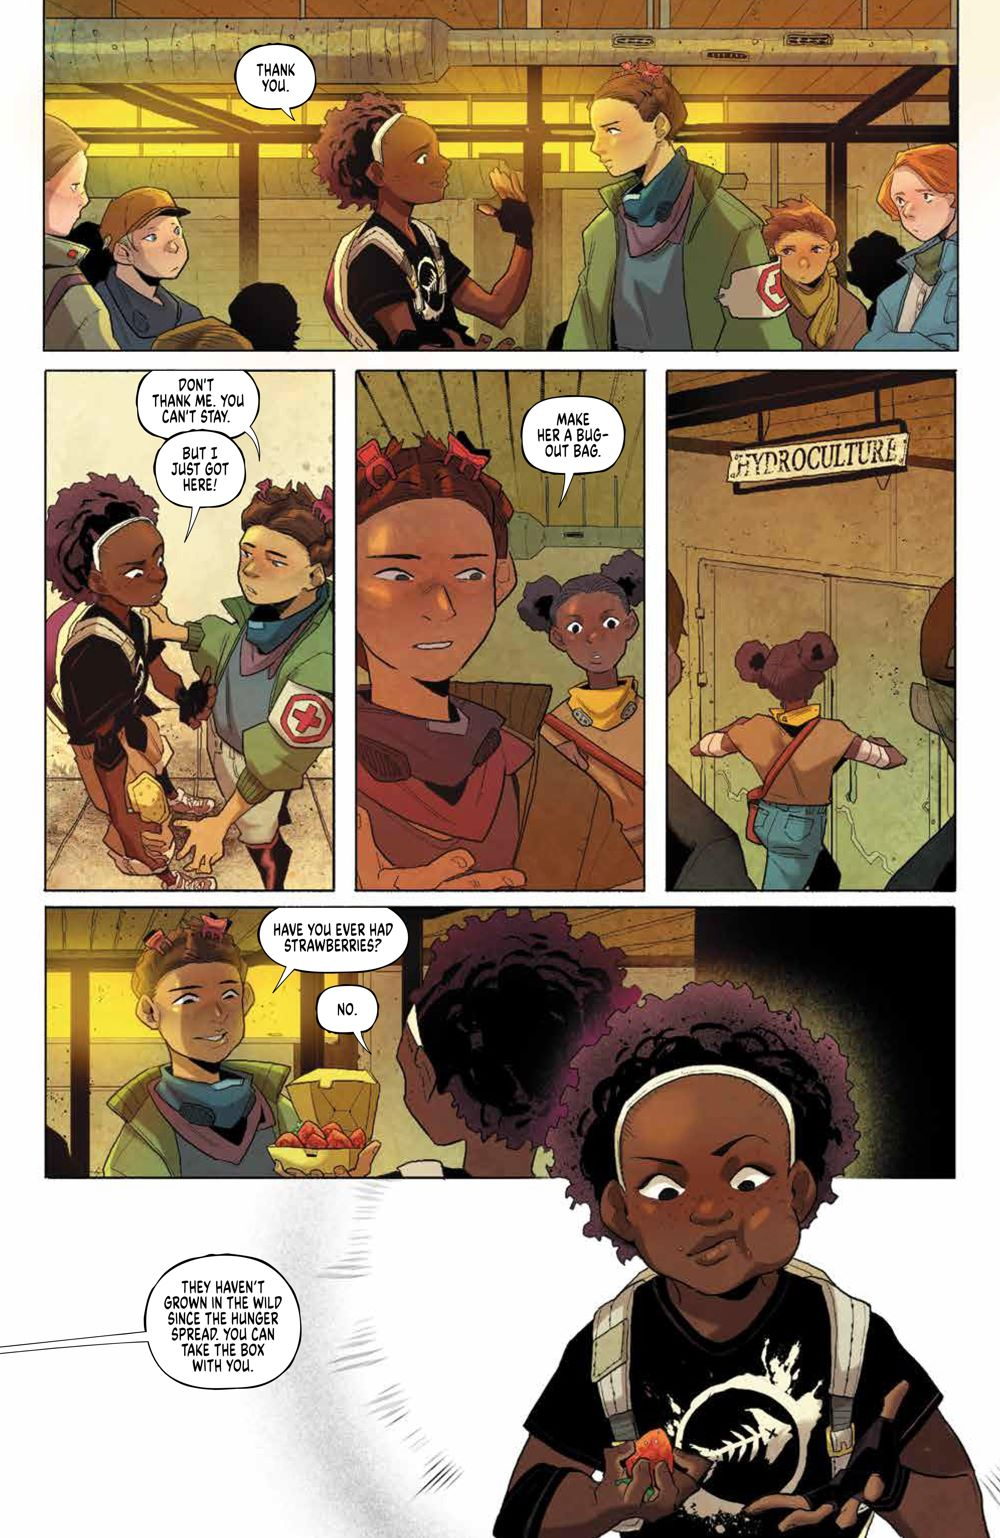 Eve_003_PRESS_5 ComicList Previews: EVE #3 (OF 5)